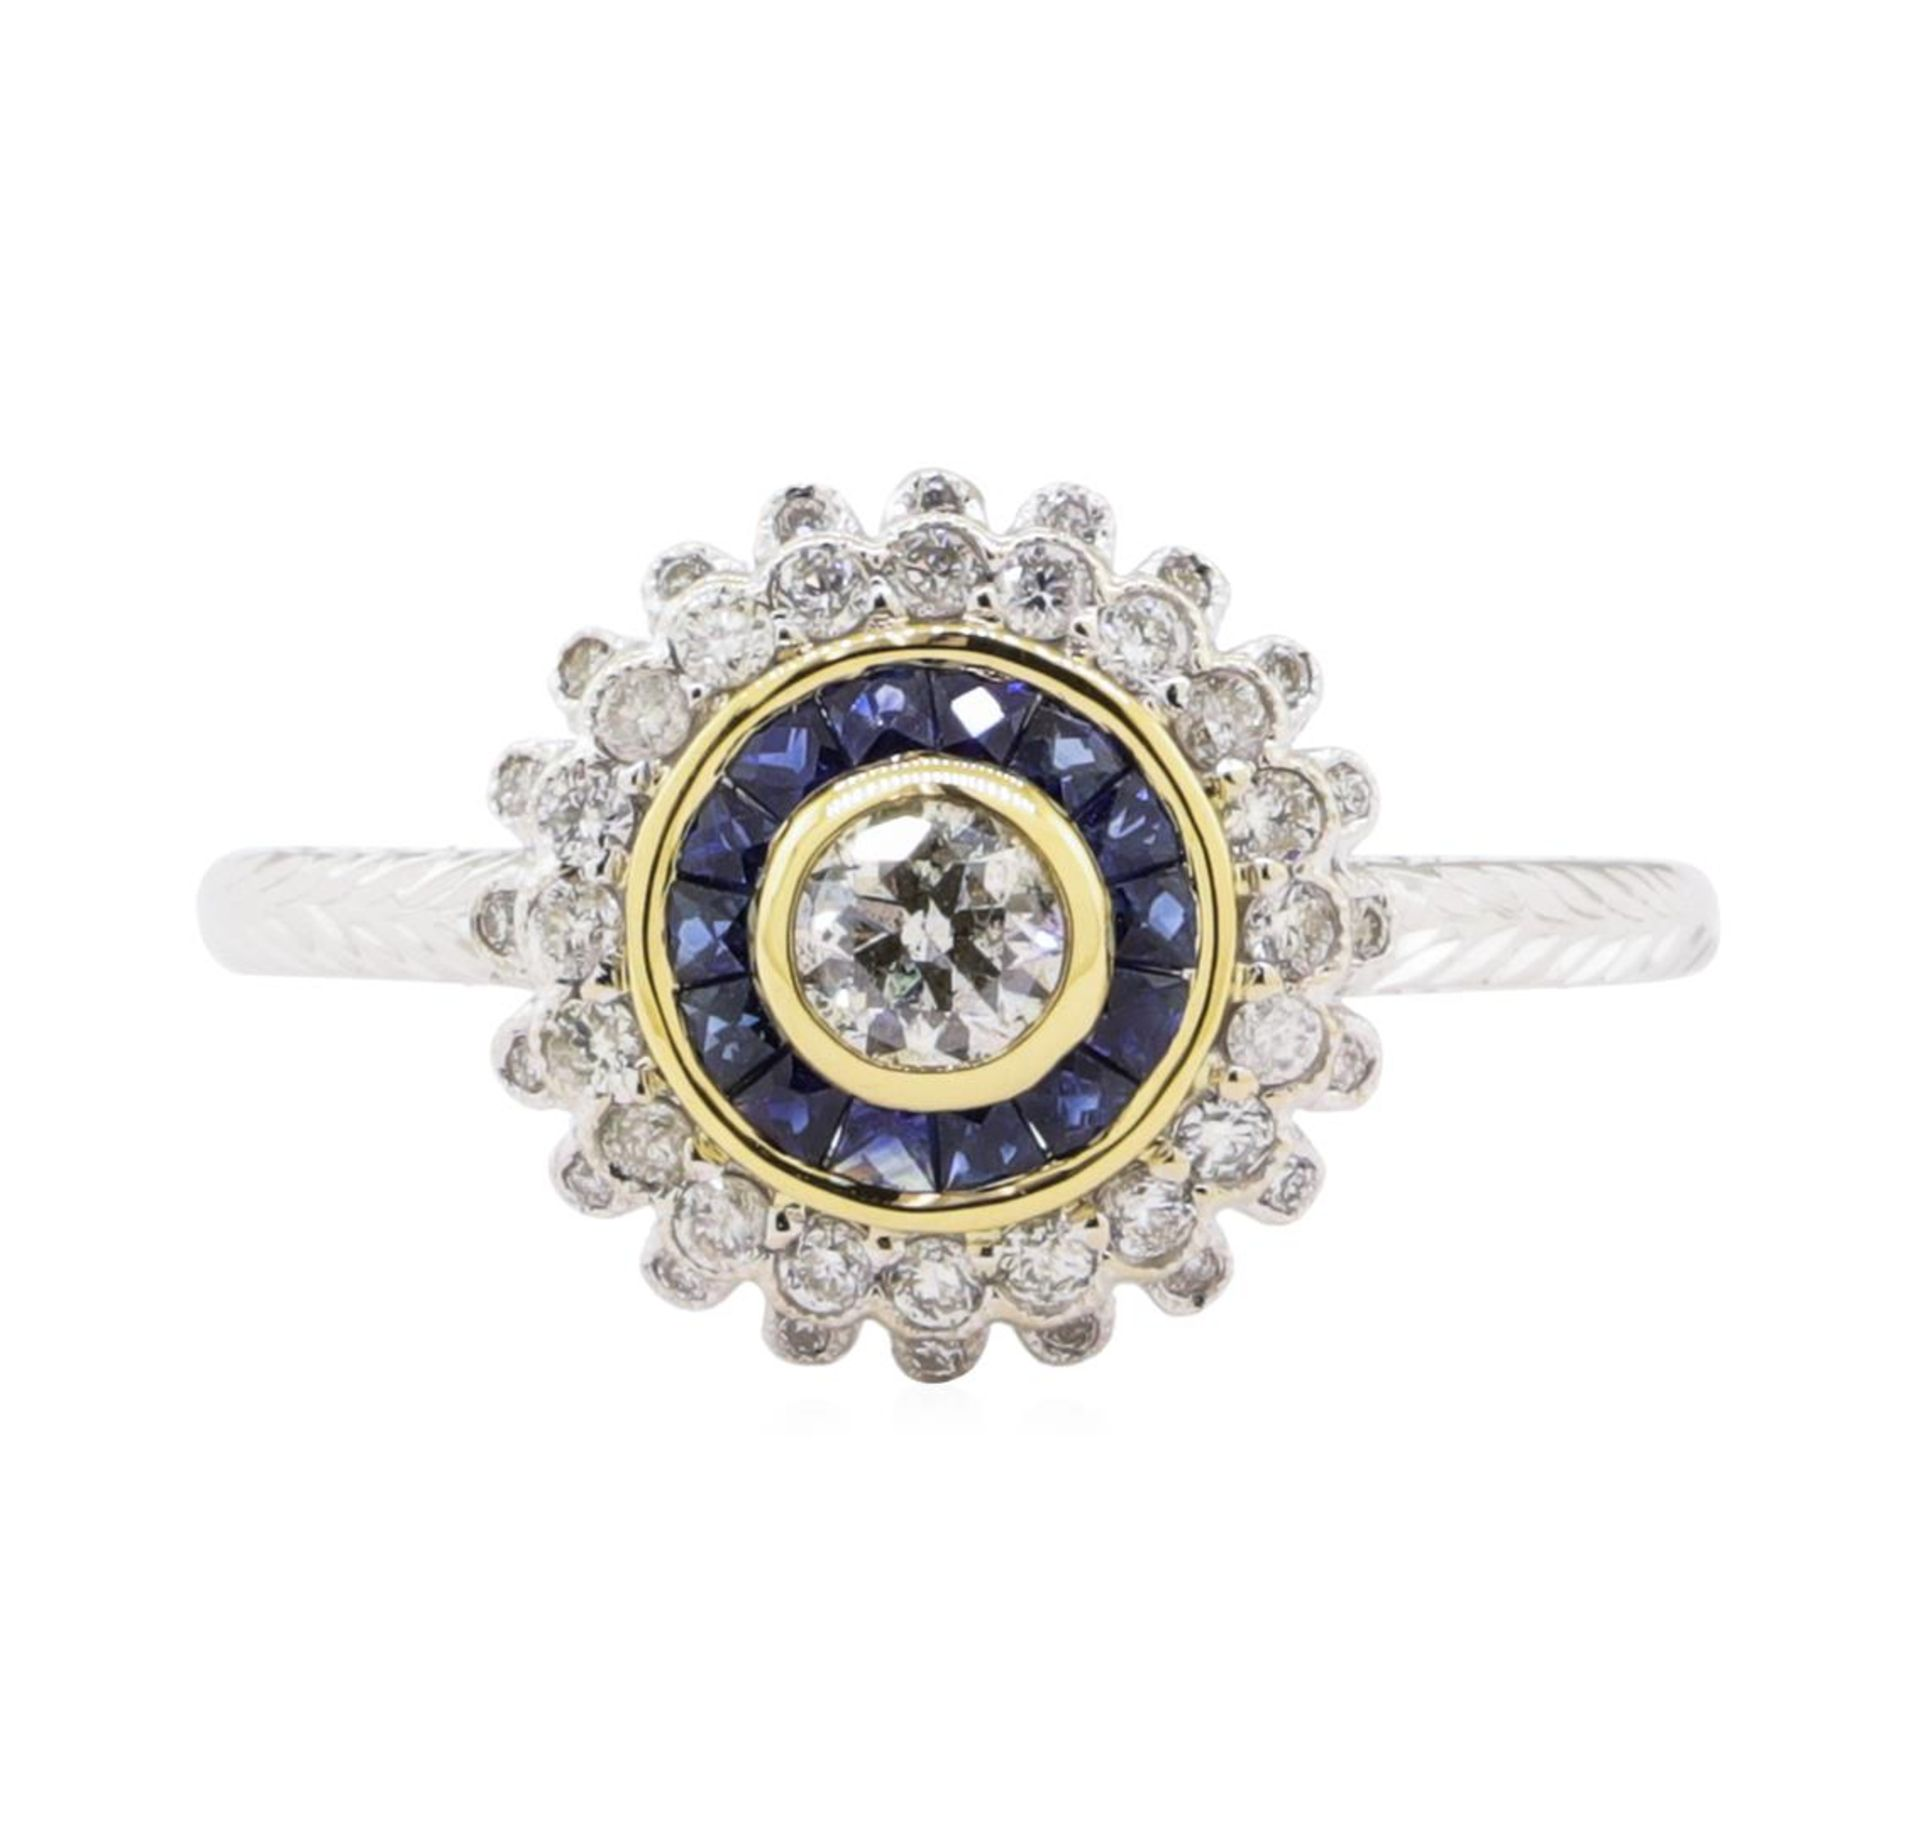 0.44ctw Diamond Ring - 18KT Two-Tone Gold - Image 2 of 4